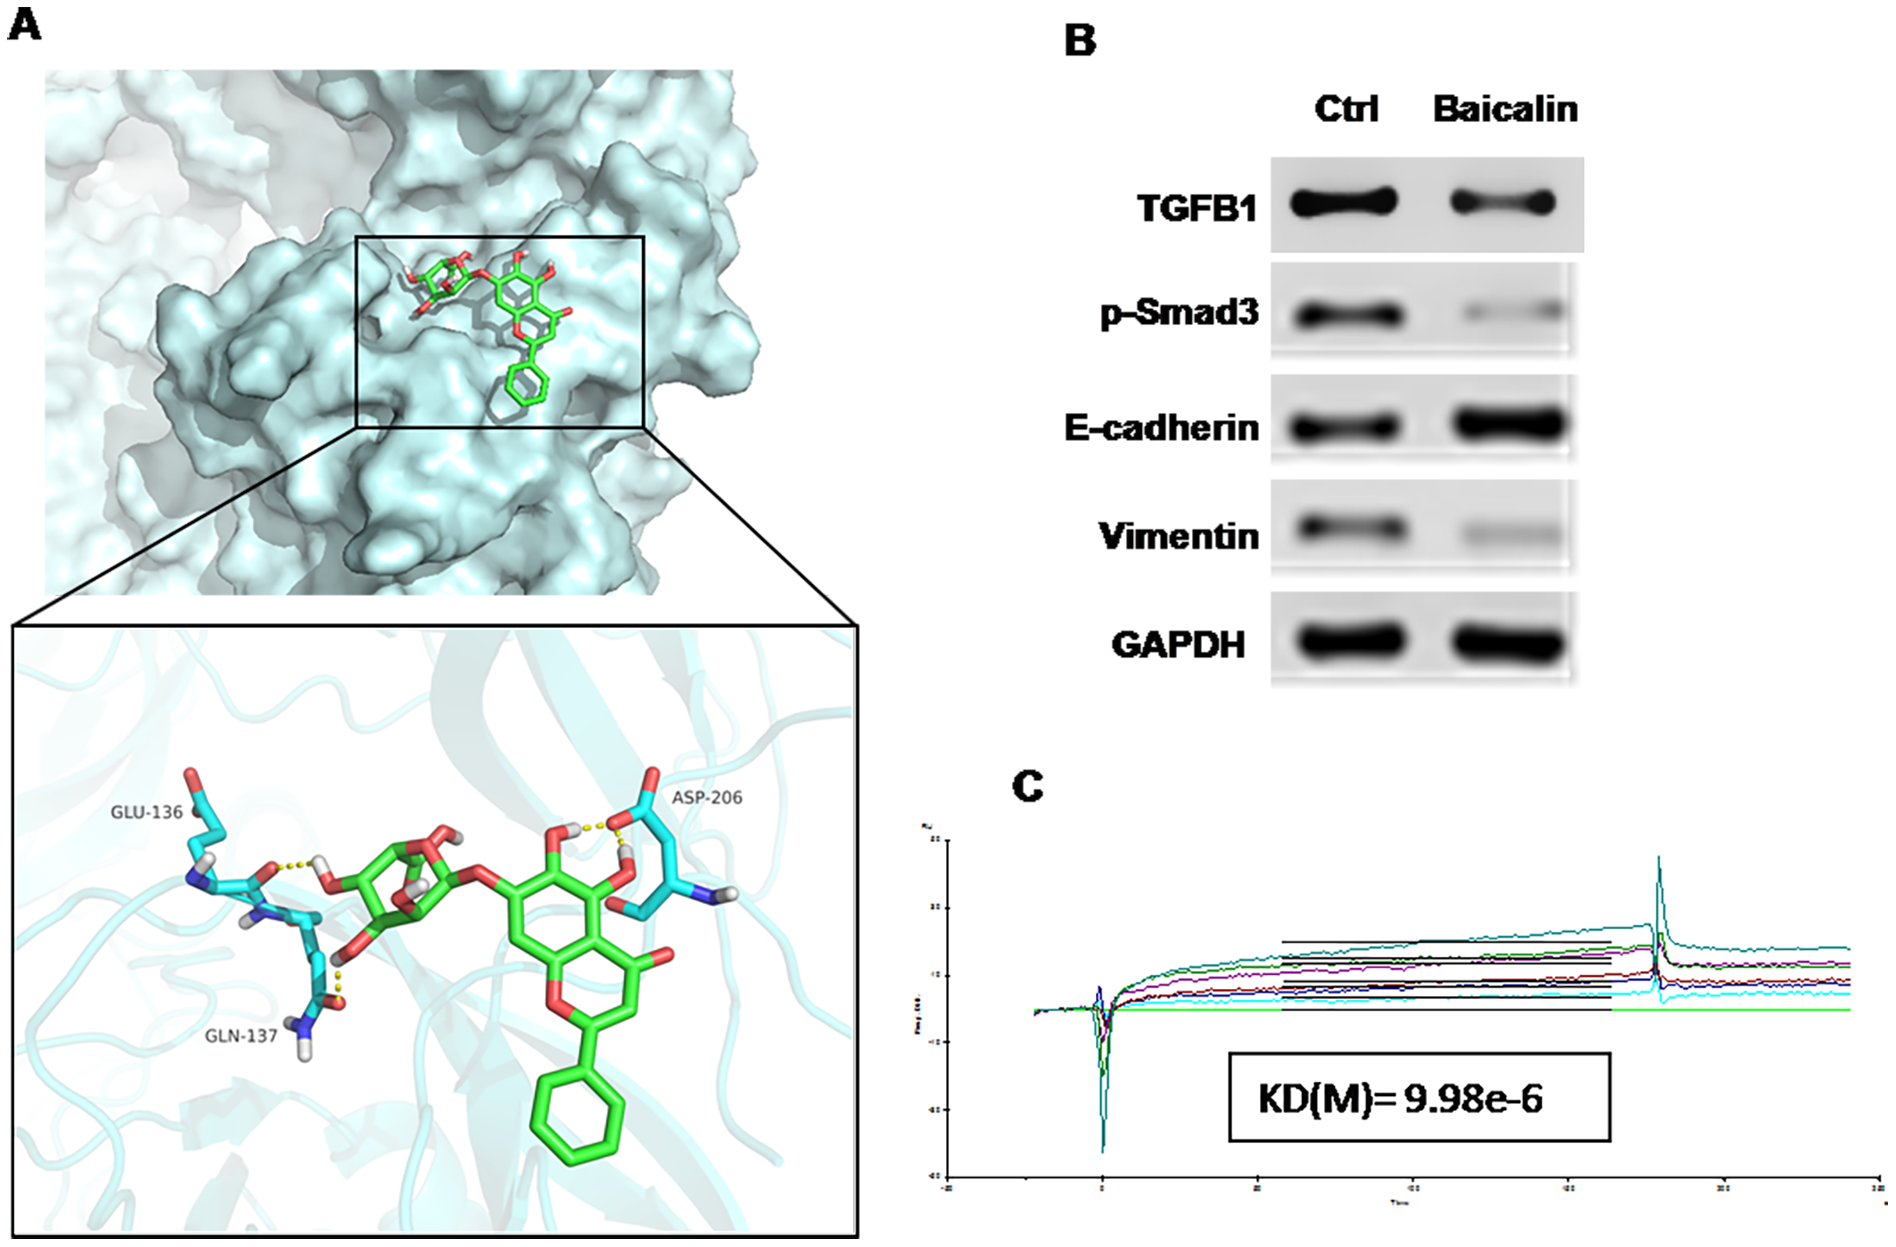 Baicalin suppressed EMT in breast cancer via targeting the TGF-β1/Snail1 pathway.